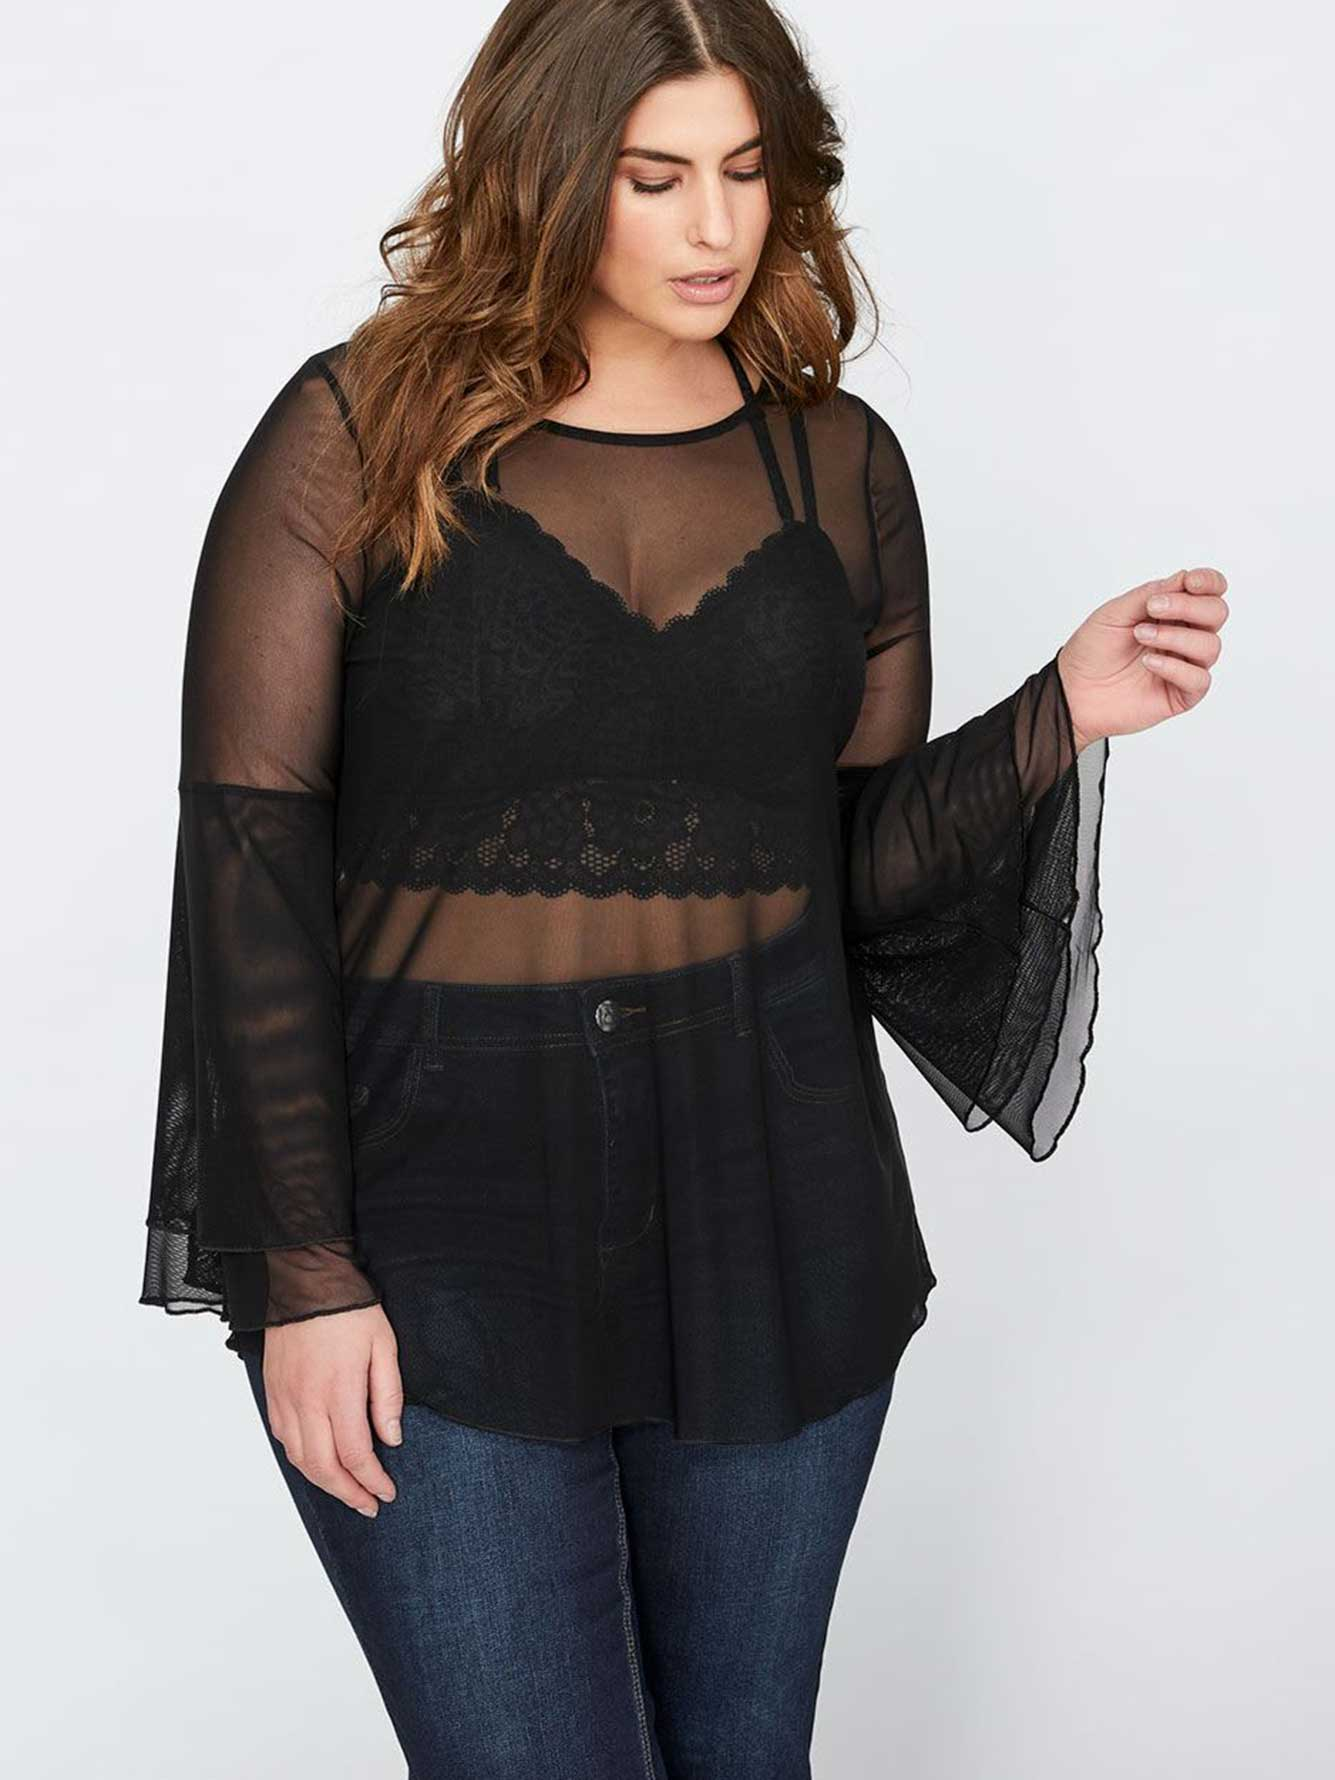 bb9477a2b60c4 L L Mesh Top with Double Ruffle Sleeves